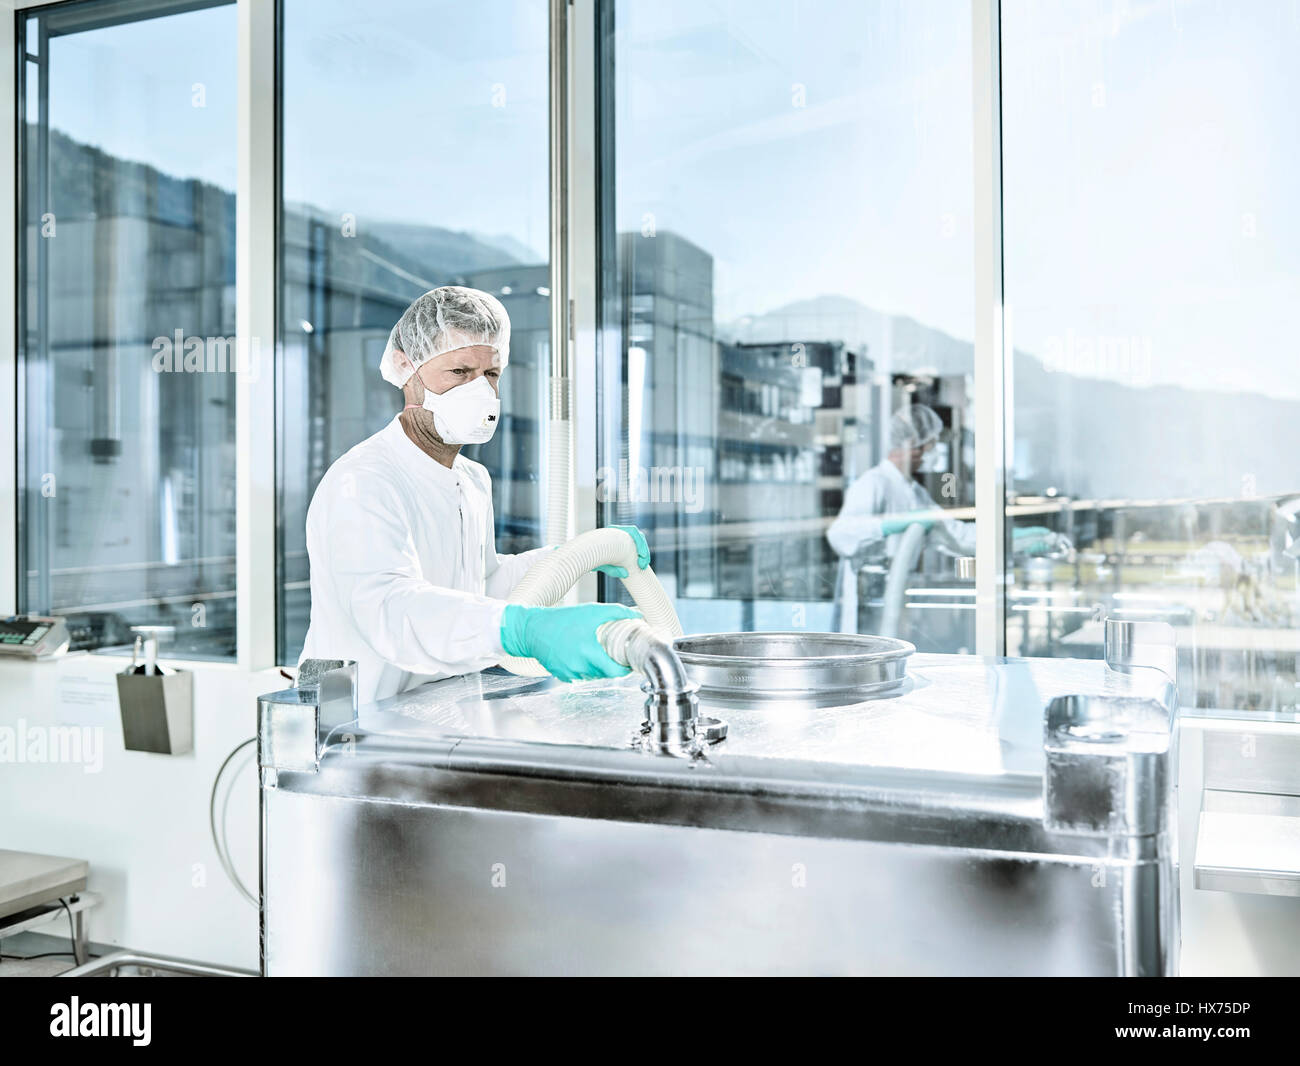 Chemical Laboratory, Chemist with hairnet and face mask in a pharmaceutical production, Austria - Stock Image